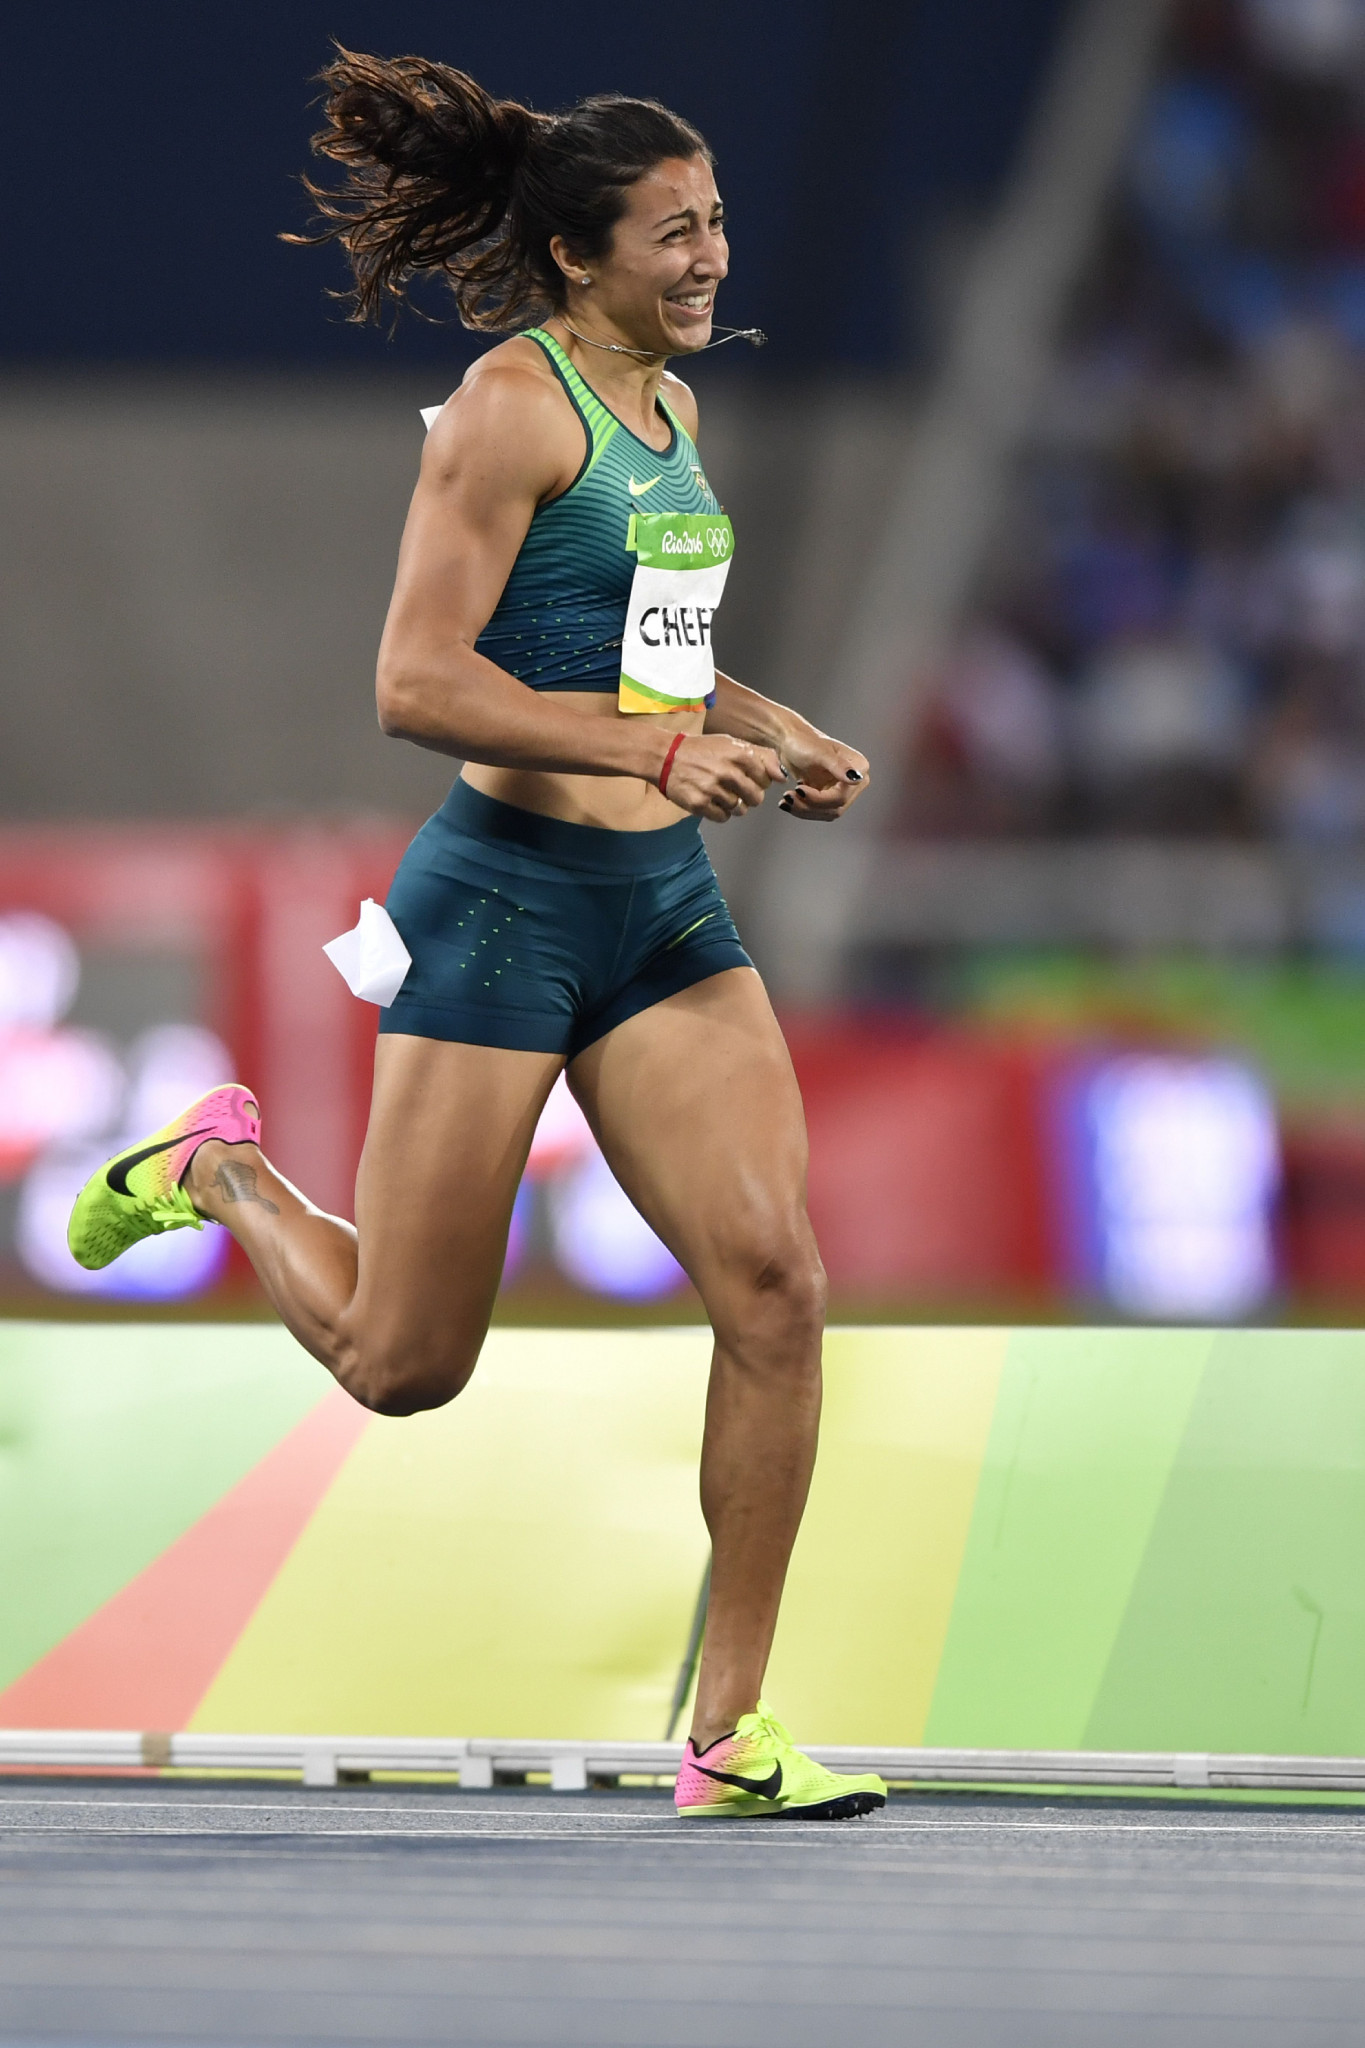 Brazil's Vanessa Spinola will be aiming to reclaim the Multistars heptathlon title ©Getty Images